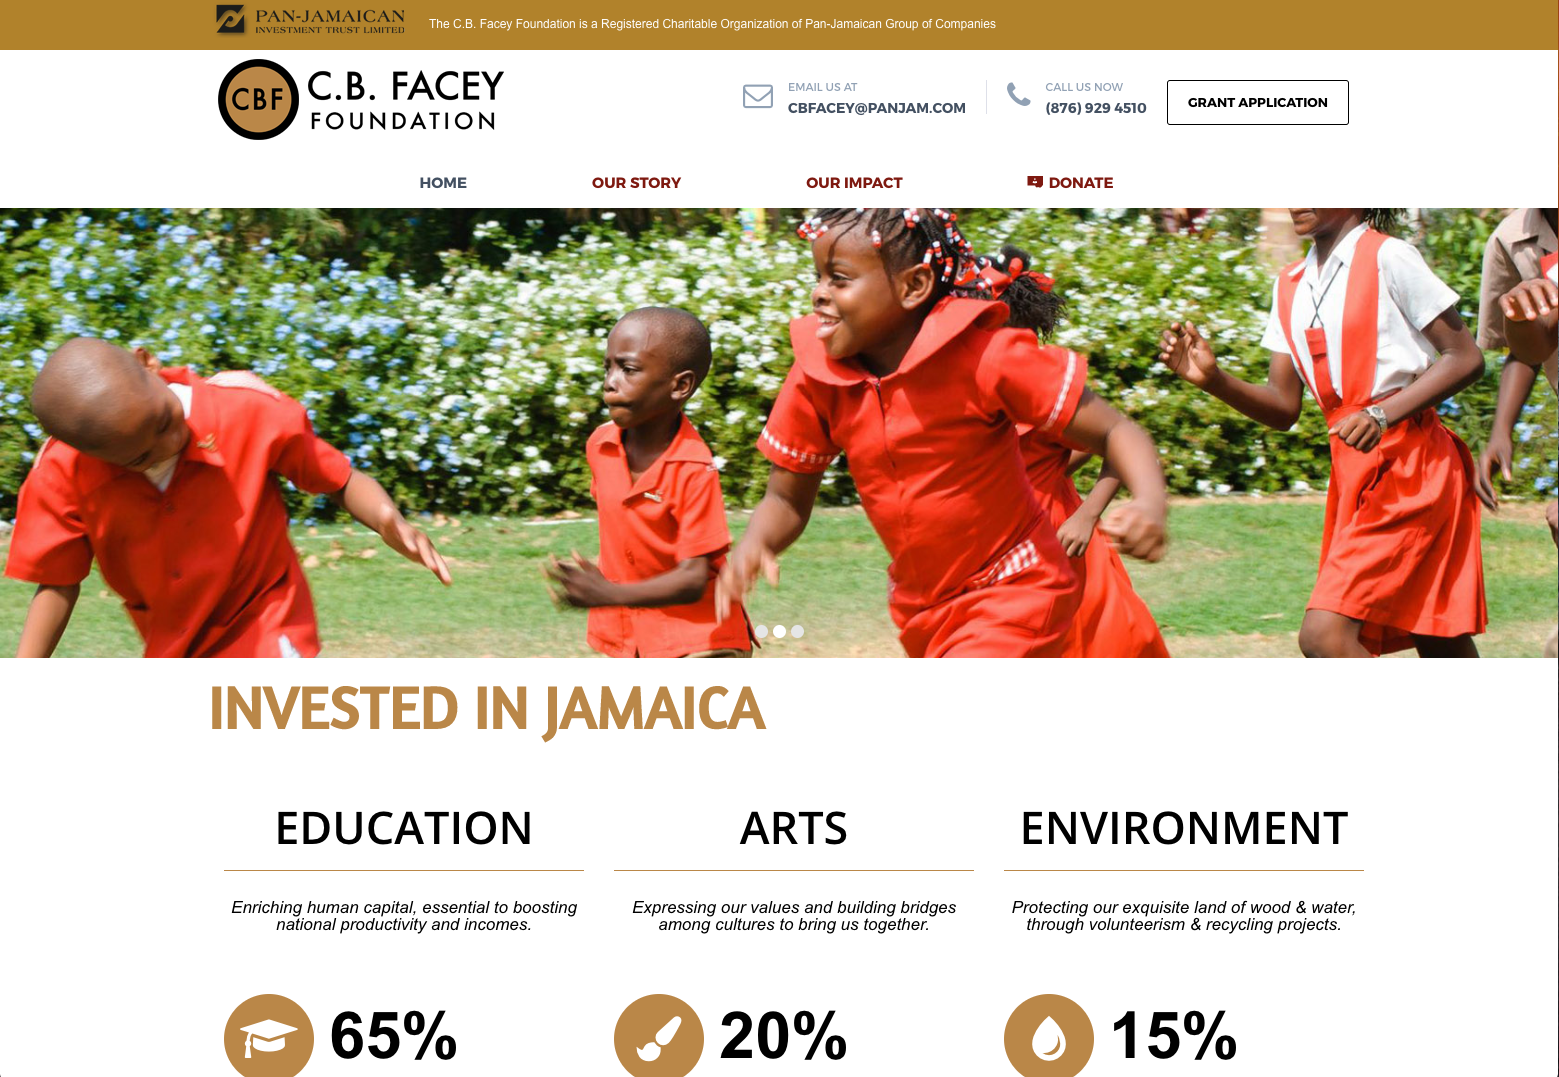 C.B. Facey Foundation